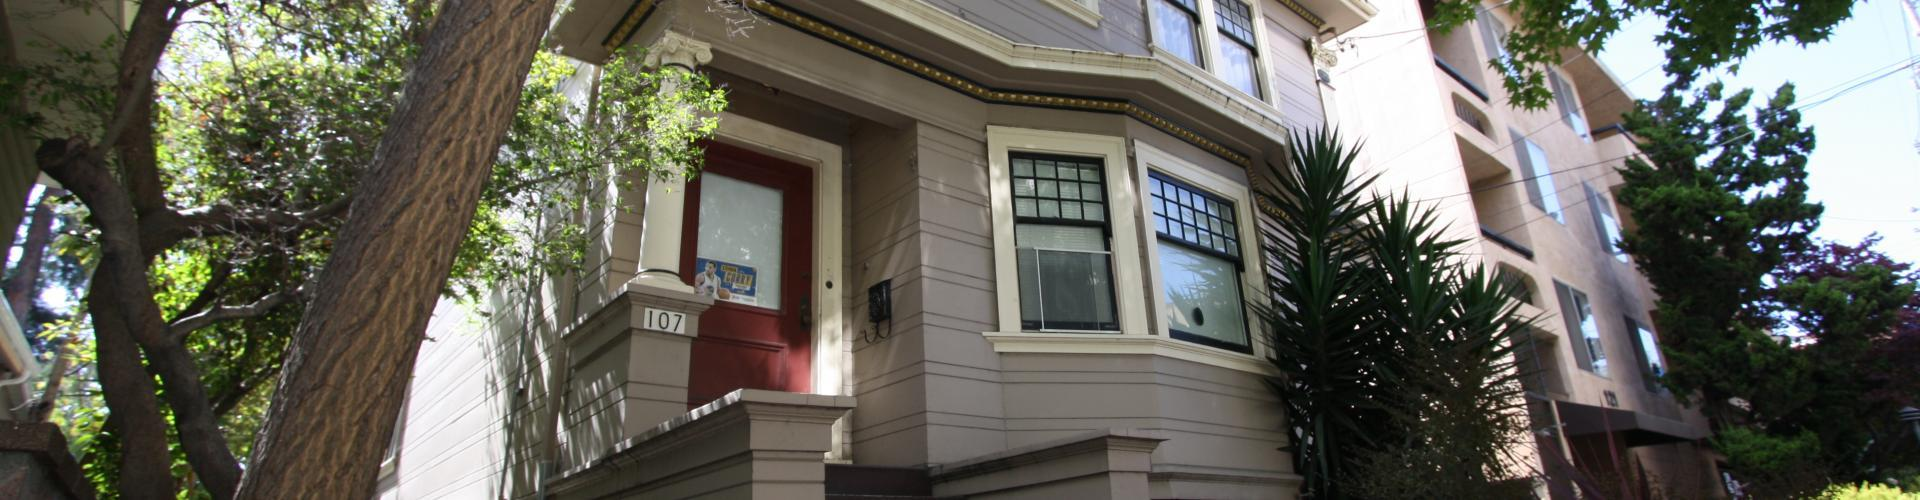 Single Family Homes for Rent, Oakland and Berkeley